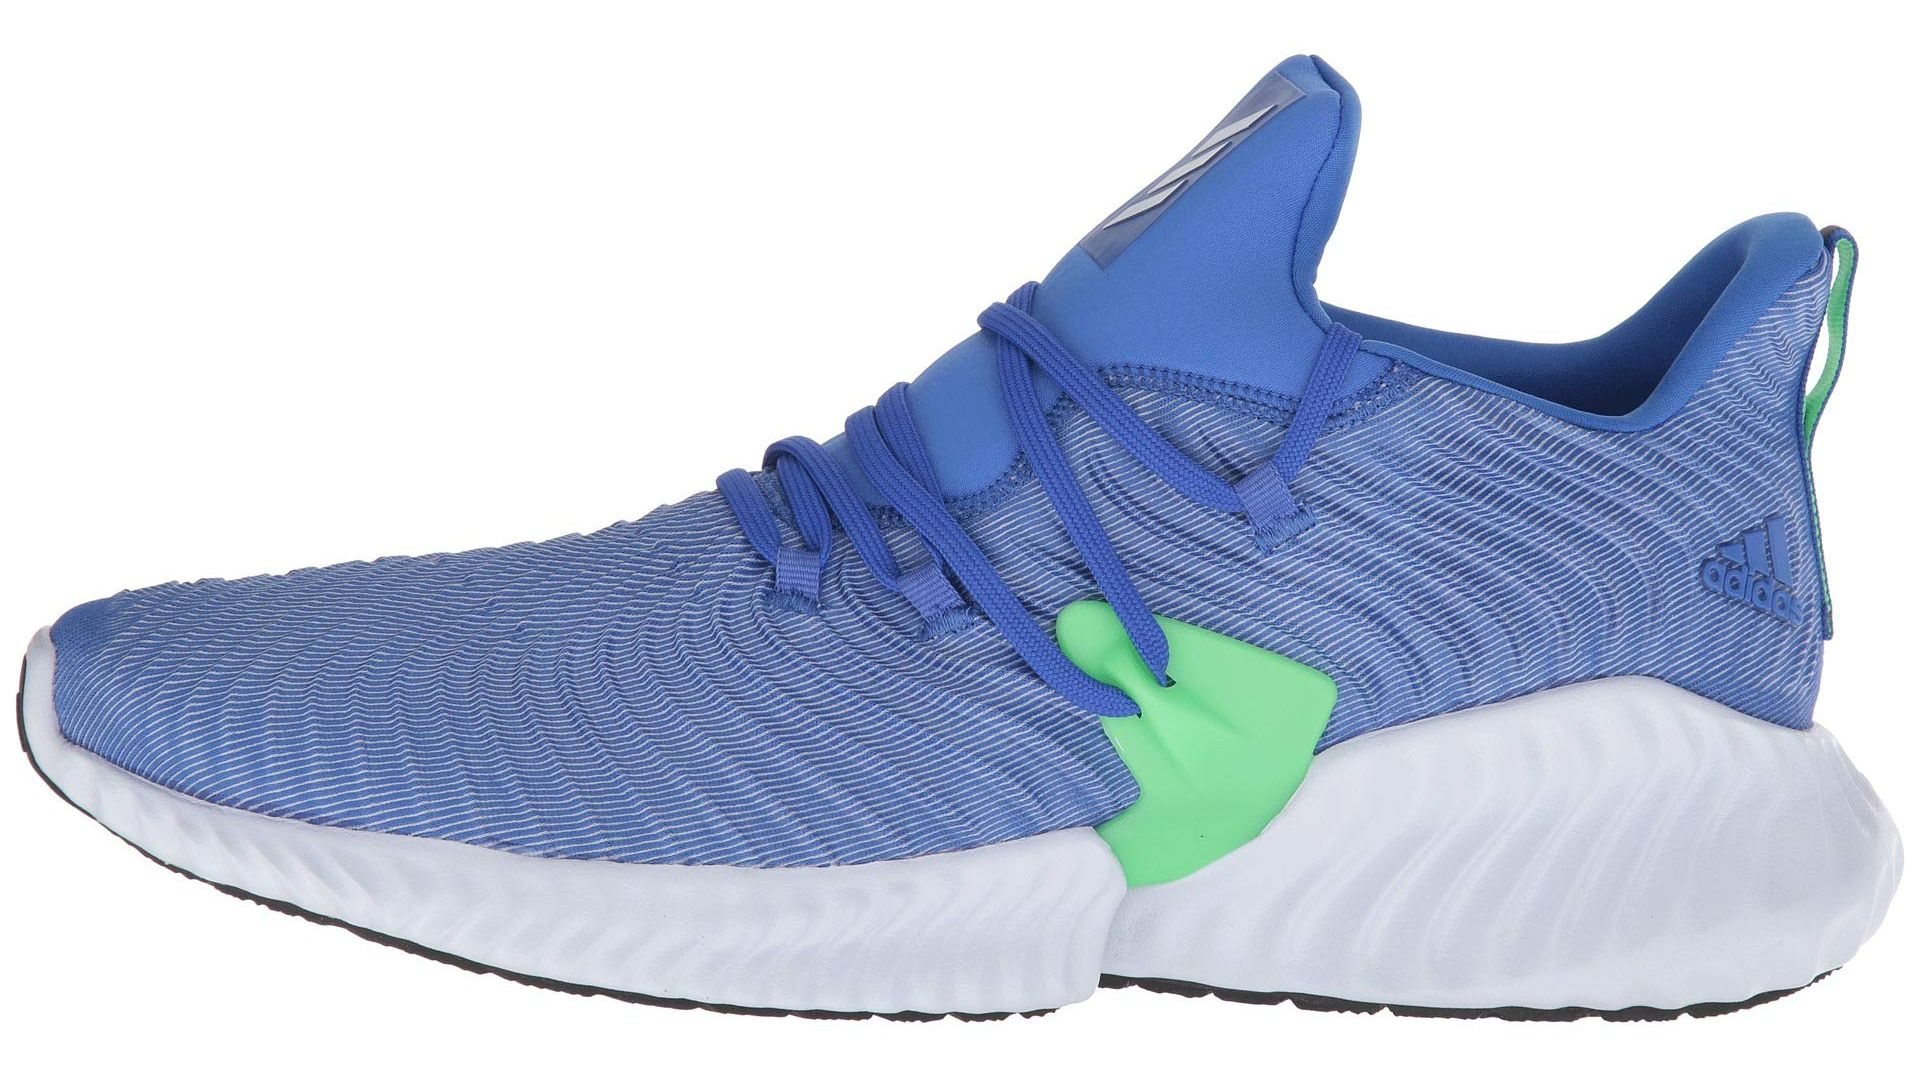 official photos 35173 b63b3 Zappos. Adidas. Alphabounce Instinct